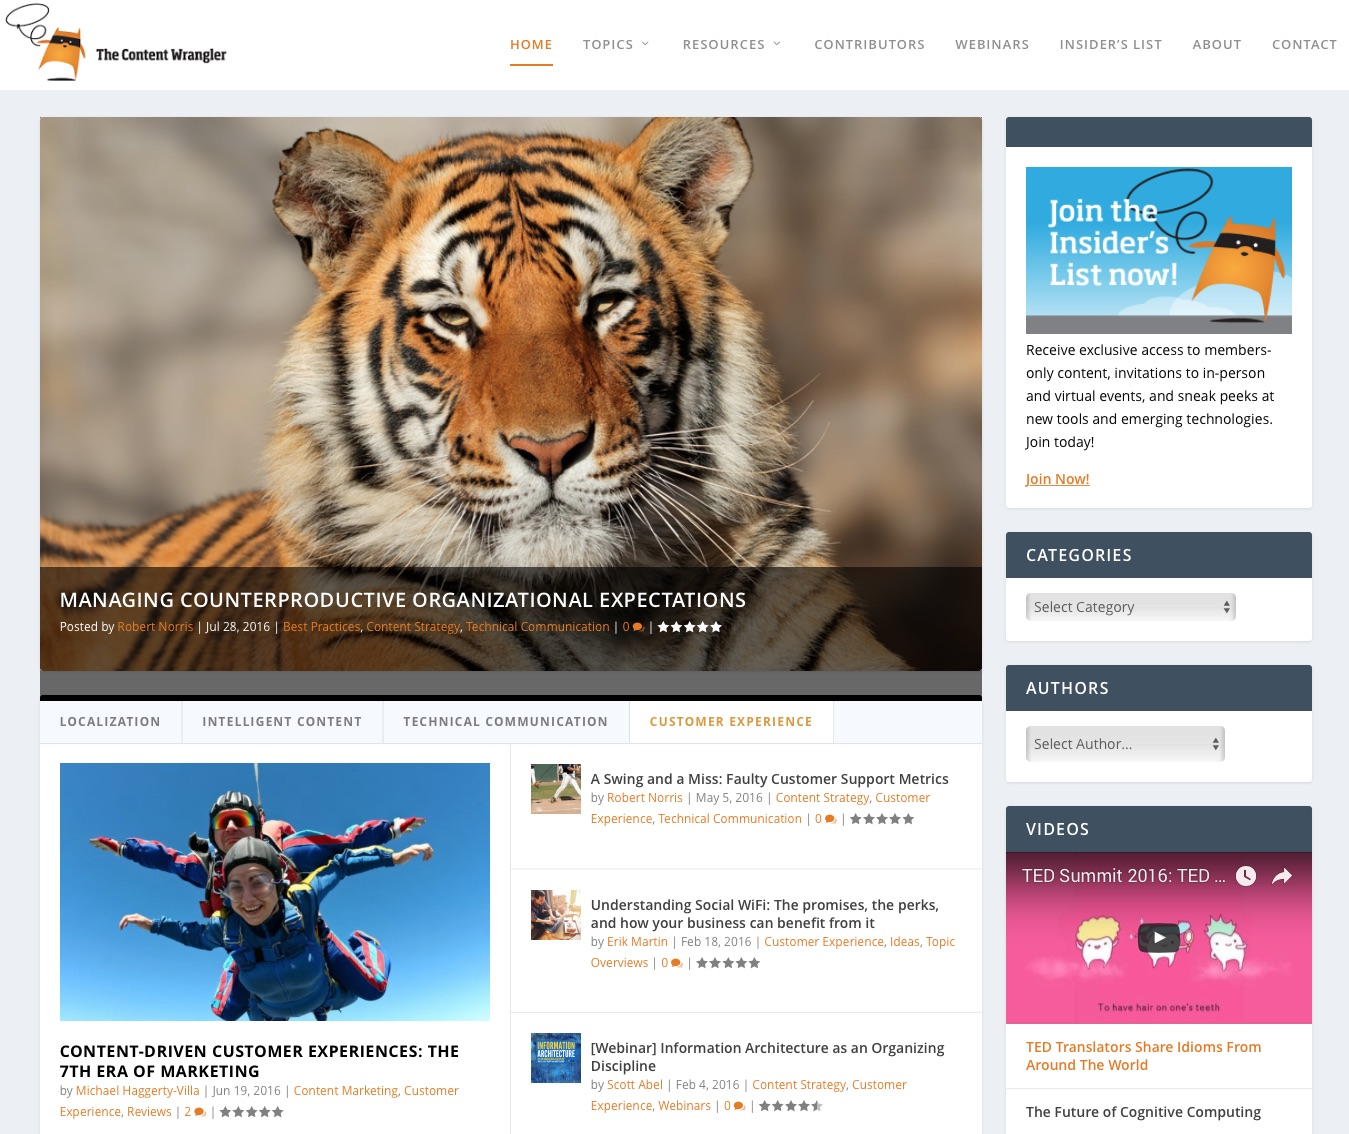 Image: The Content Wrangler home page with videos.